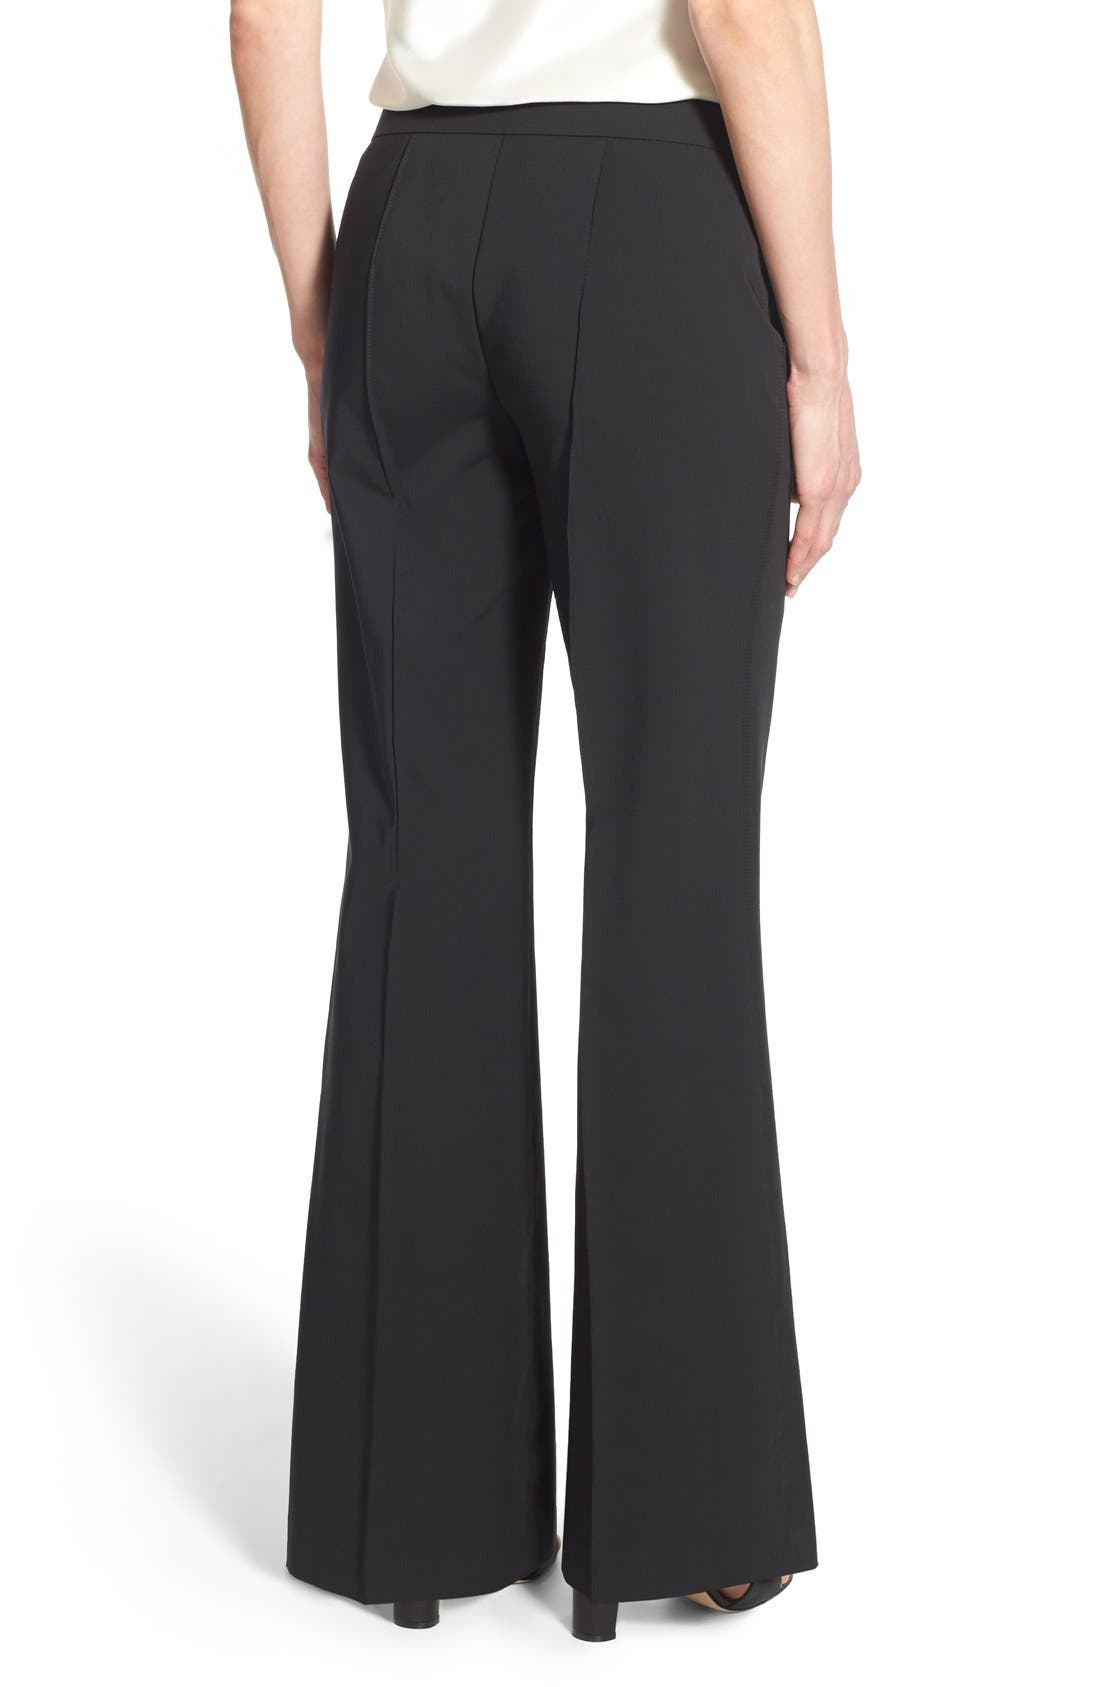 Alternate Image 3  - Lafayette 148 New York 'Kenmare' Flare Leg Pants